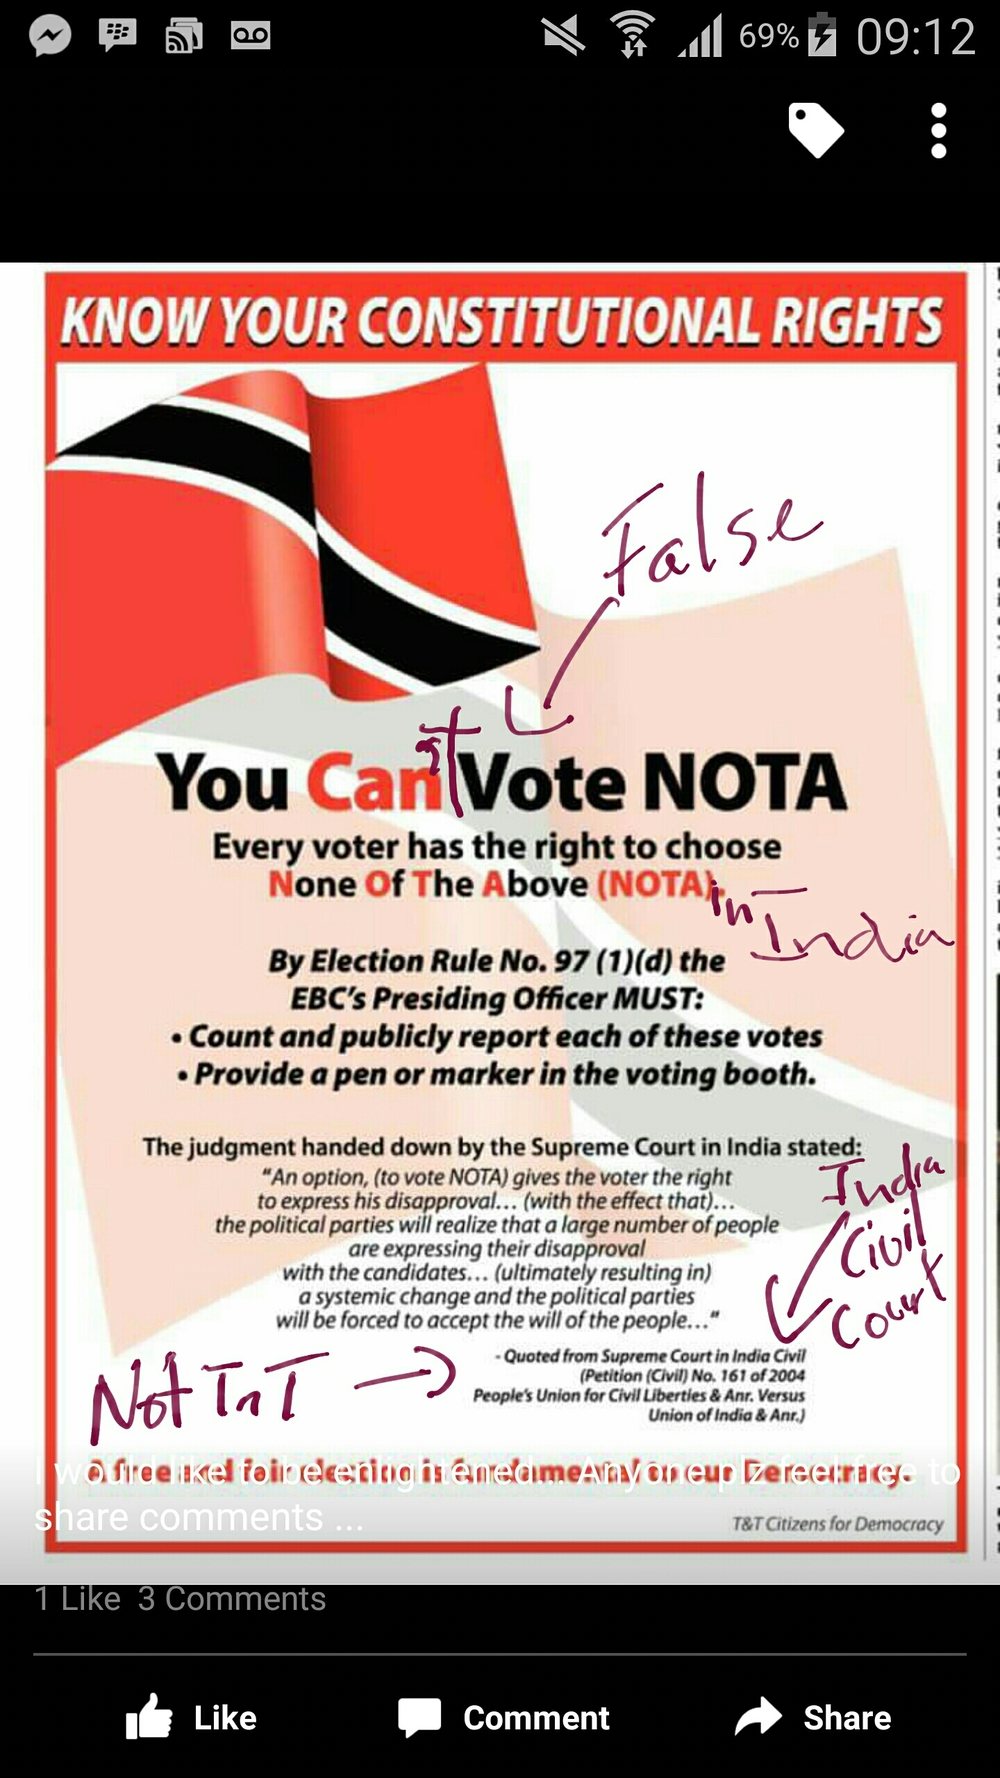 A group calling itself TT Citizens for Democracy has post this flyer that falsely implies NOTA is a legal option in Teinidad and Tobago.